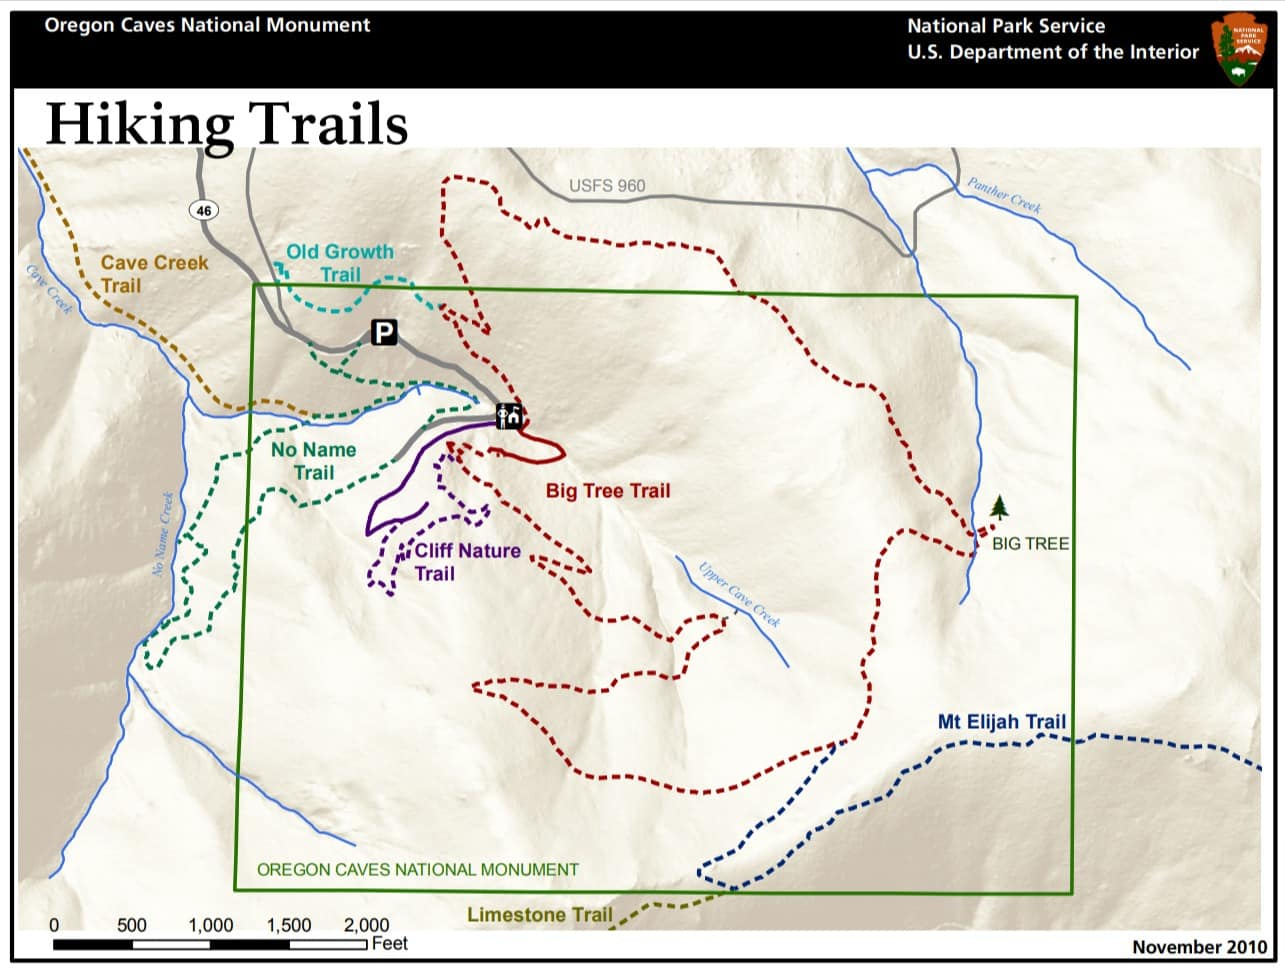 Oregon Caves National Monument Hiking Trails Map